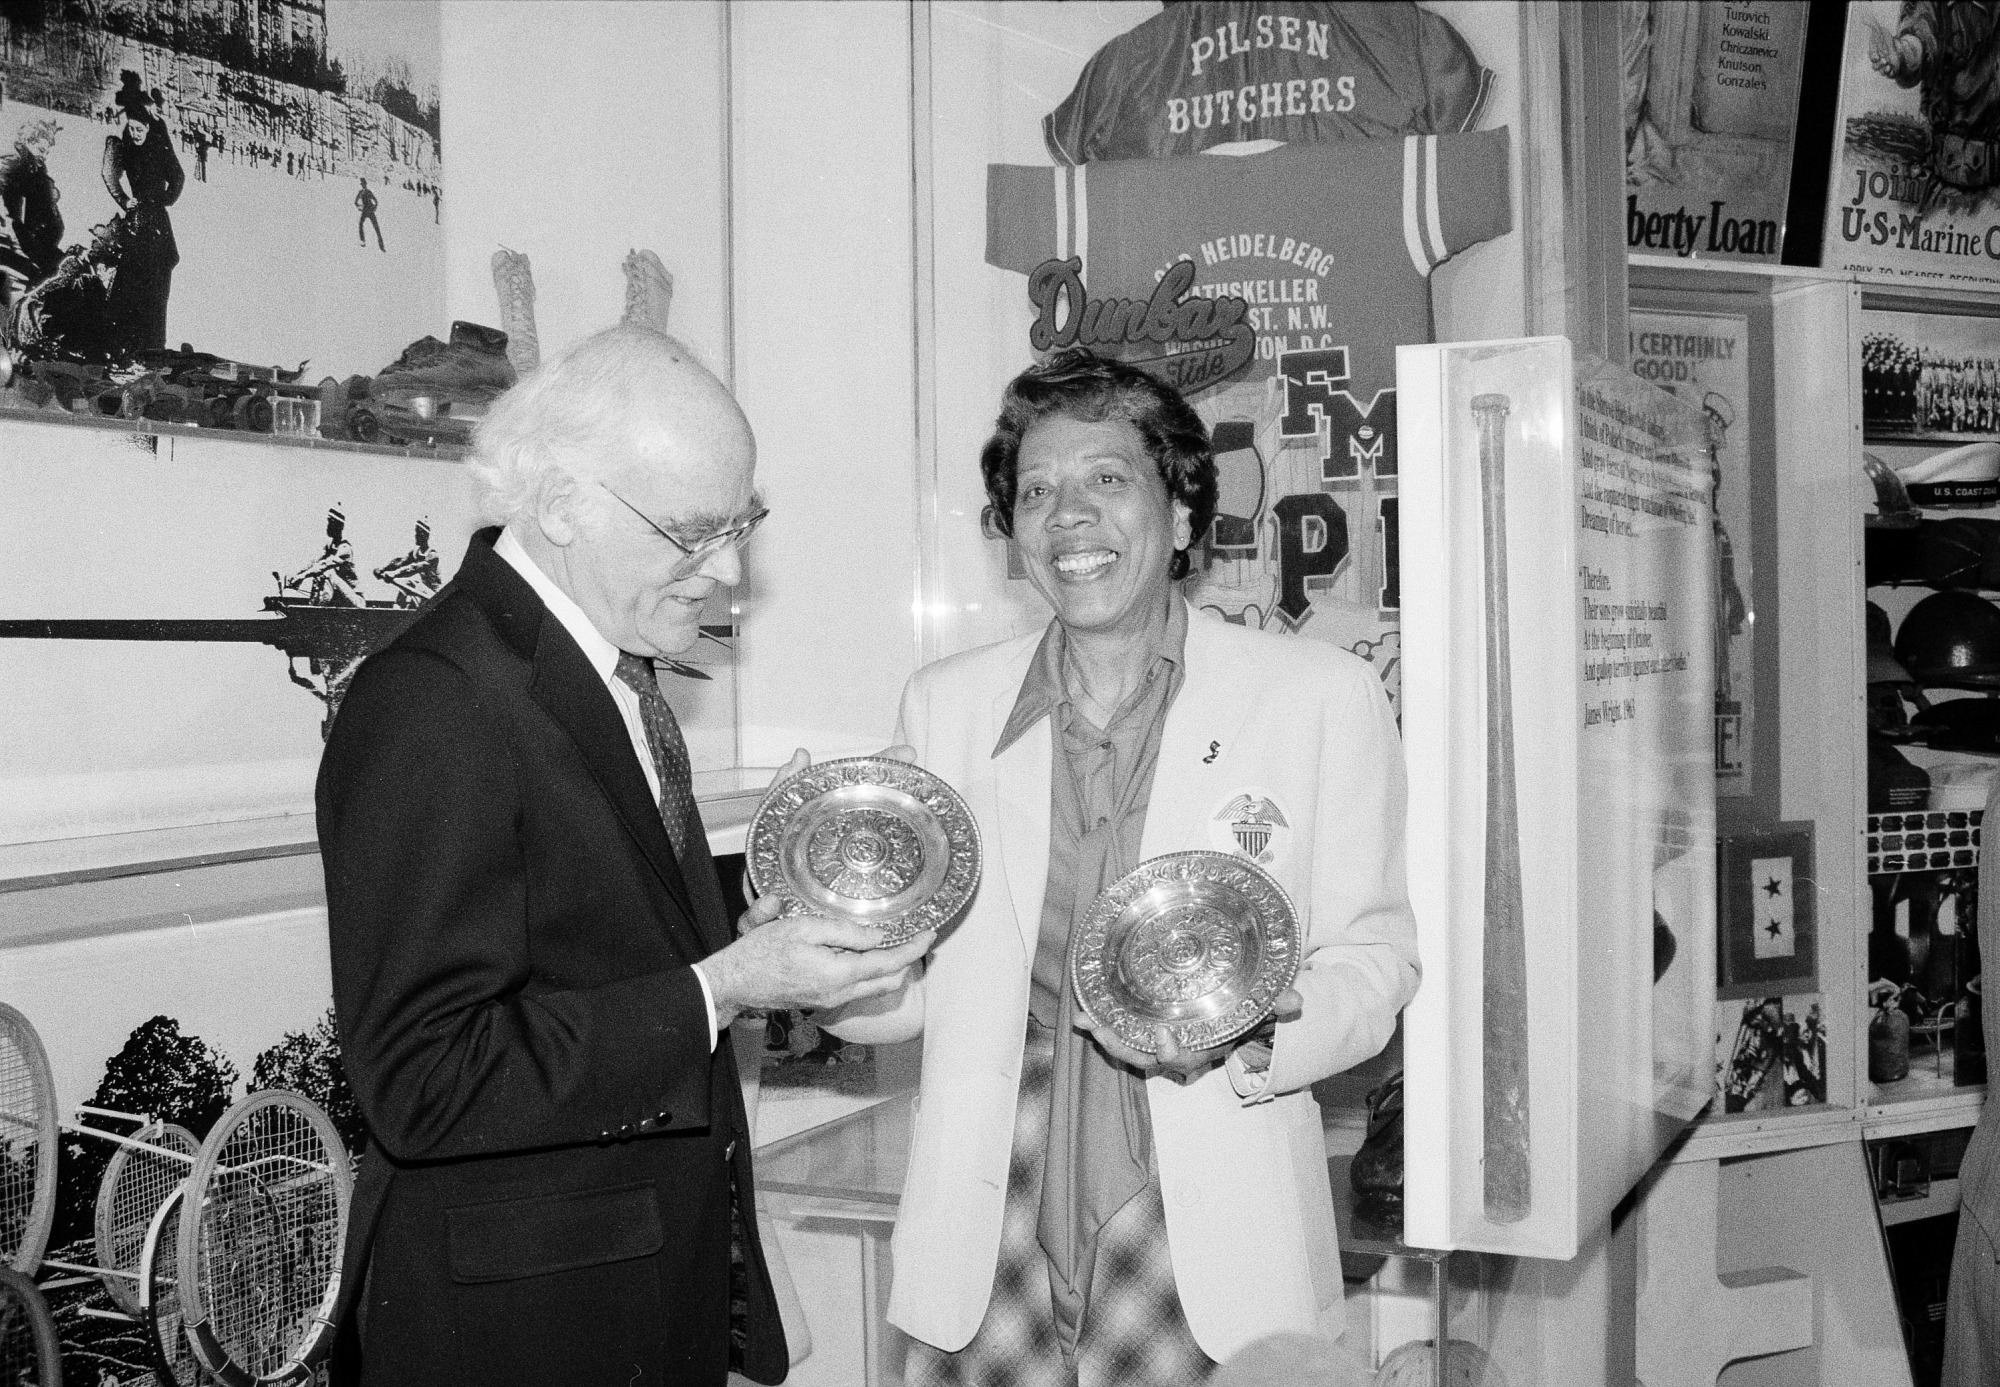 Althea Gibson at NMAH, by Greene, Donna, 1988, Smithsonian Archives - History Div, 88-8695-18.